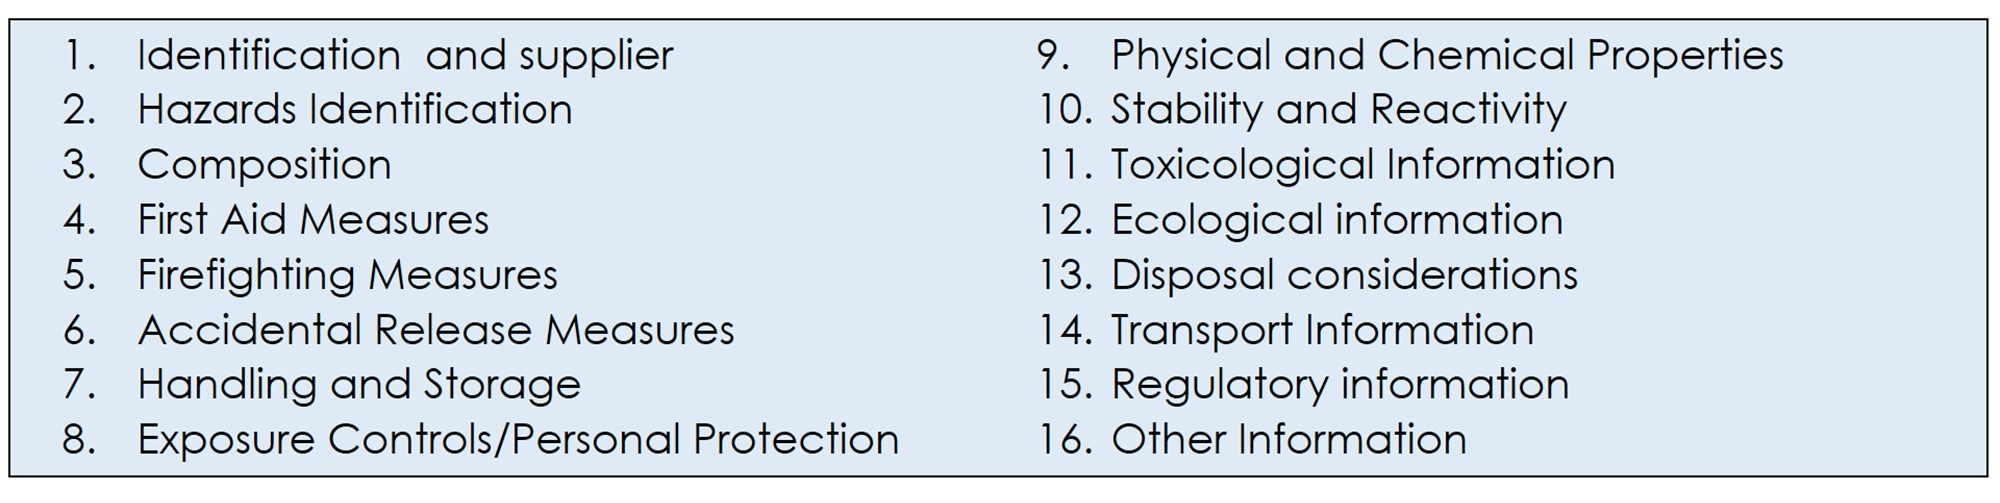 Safety Data Sheets (SDS) - Chemicals Management Guide ...